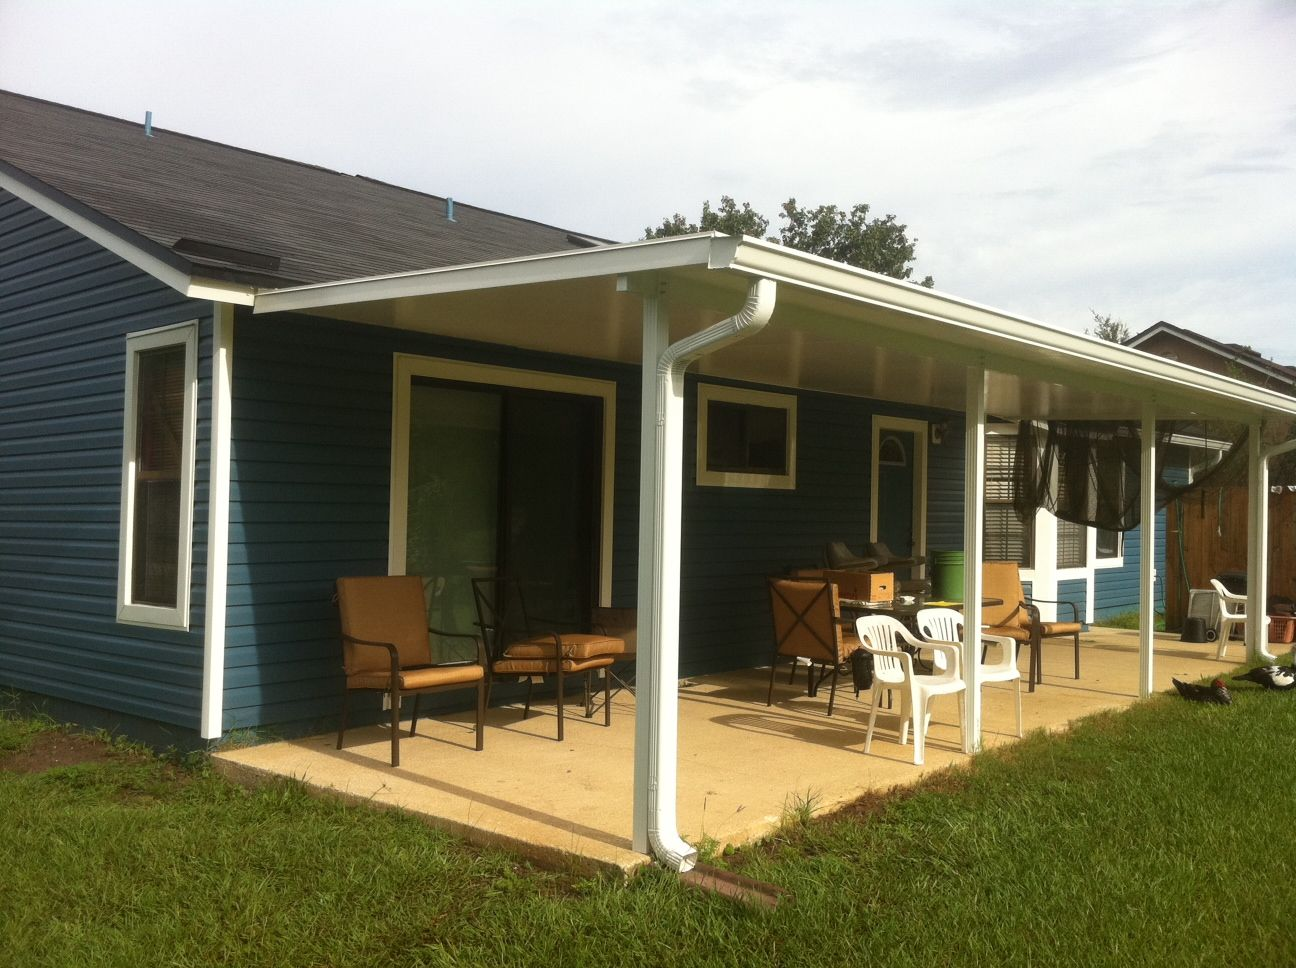 A full line of patio covers & carport kits, designed to